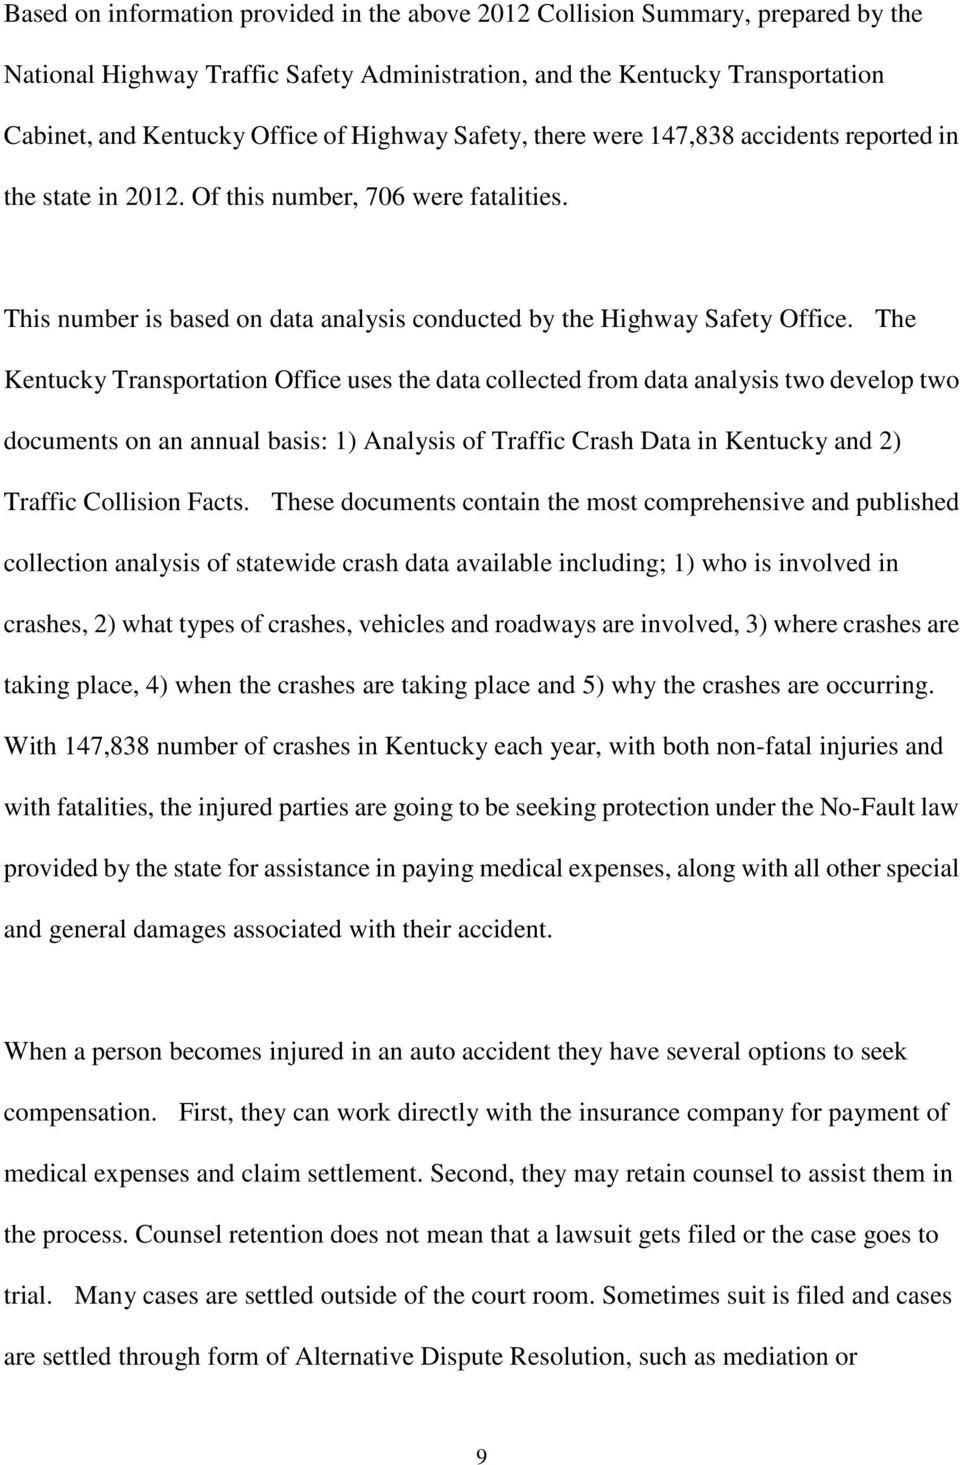 The Kentucky Transportation Office uses the data collected from data analysis two develop two documents on an annual basis: 1) Analysis of Traffic Crash Data in Kentucky and 2) Traffic Collision